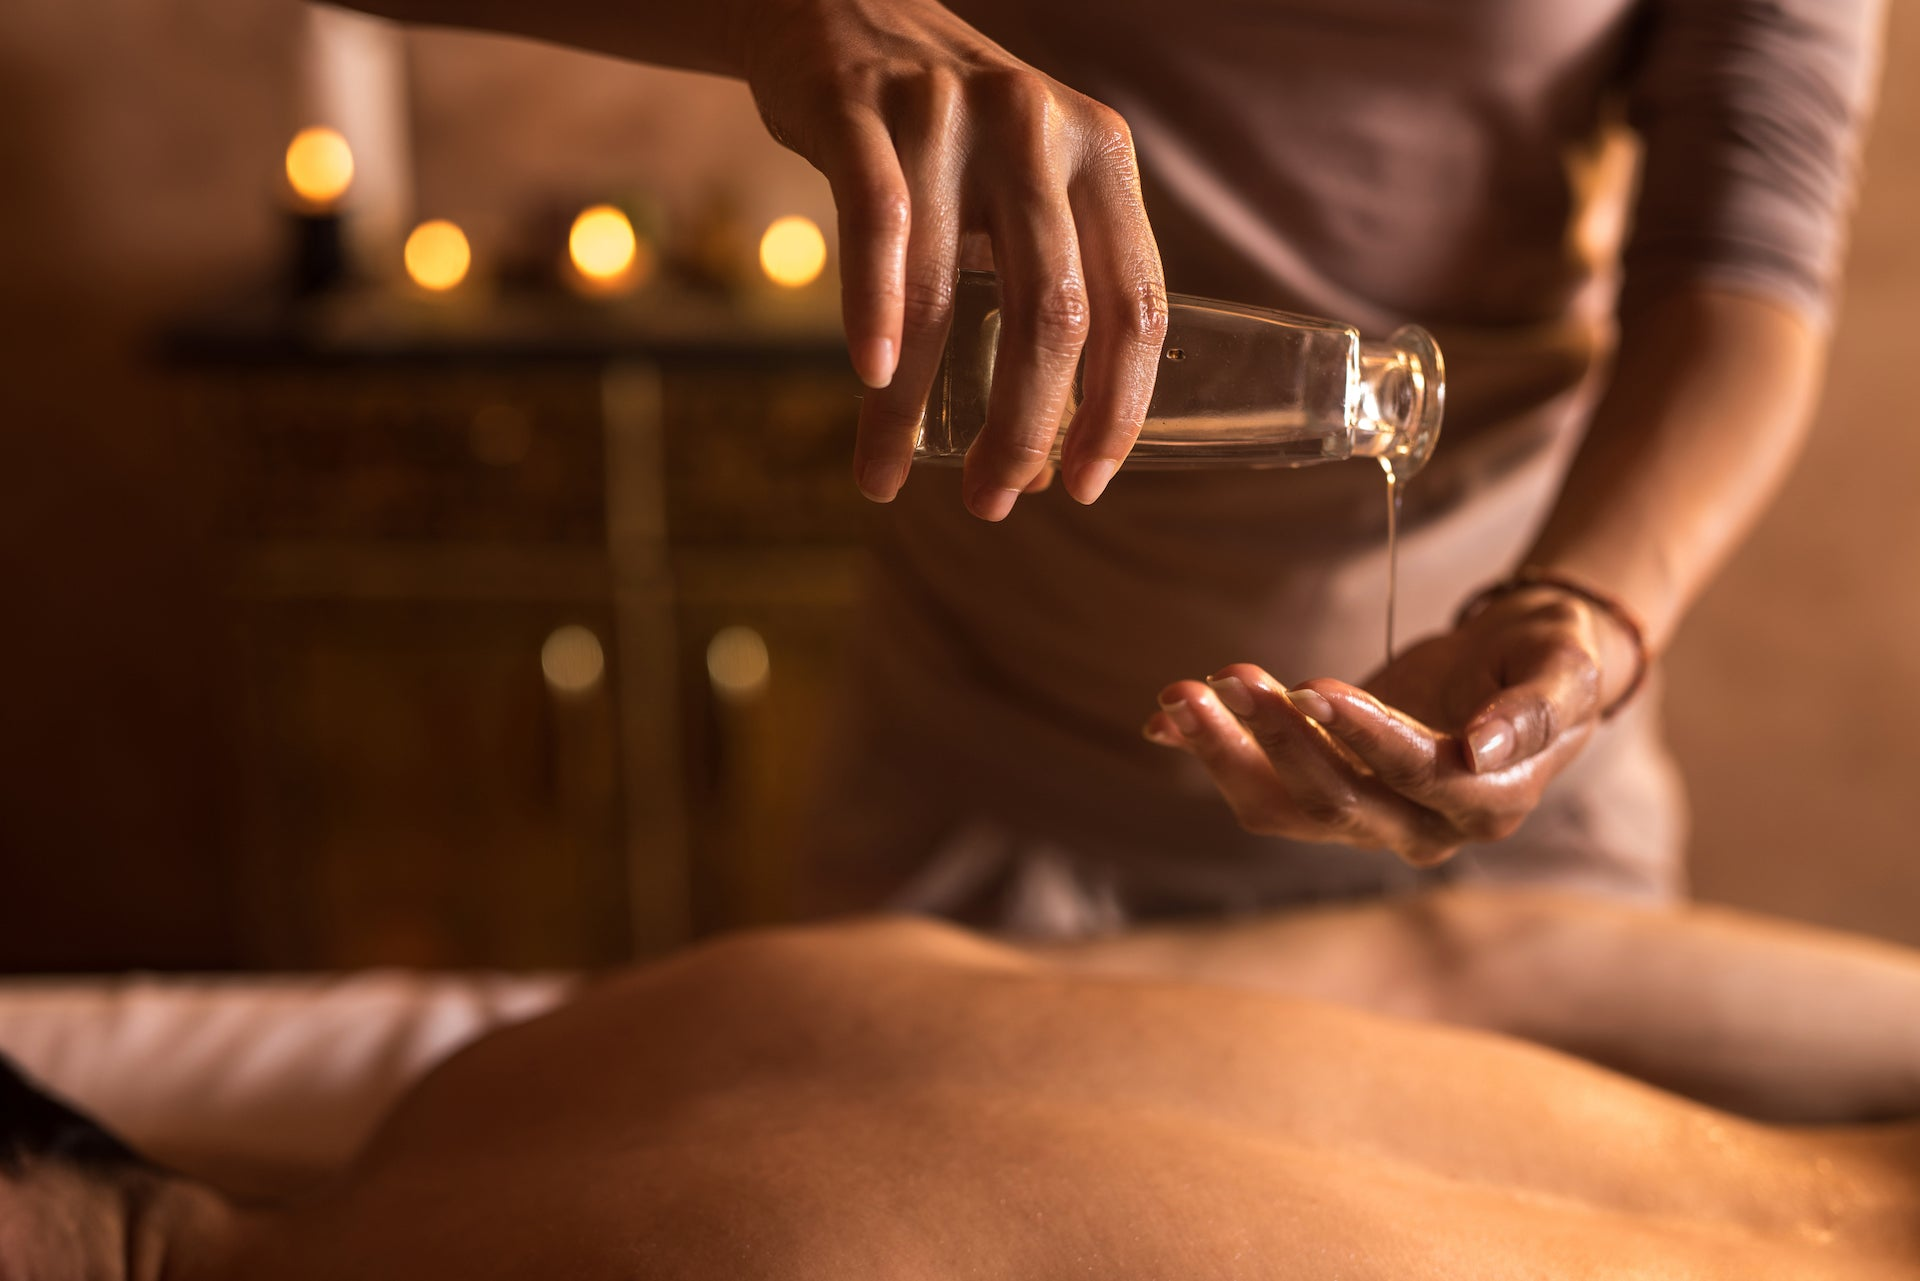 Struggling with Chronic Back Pain? CBD Massage Oil Can Help